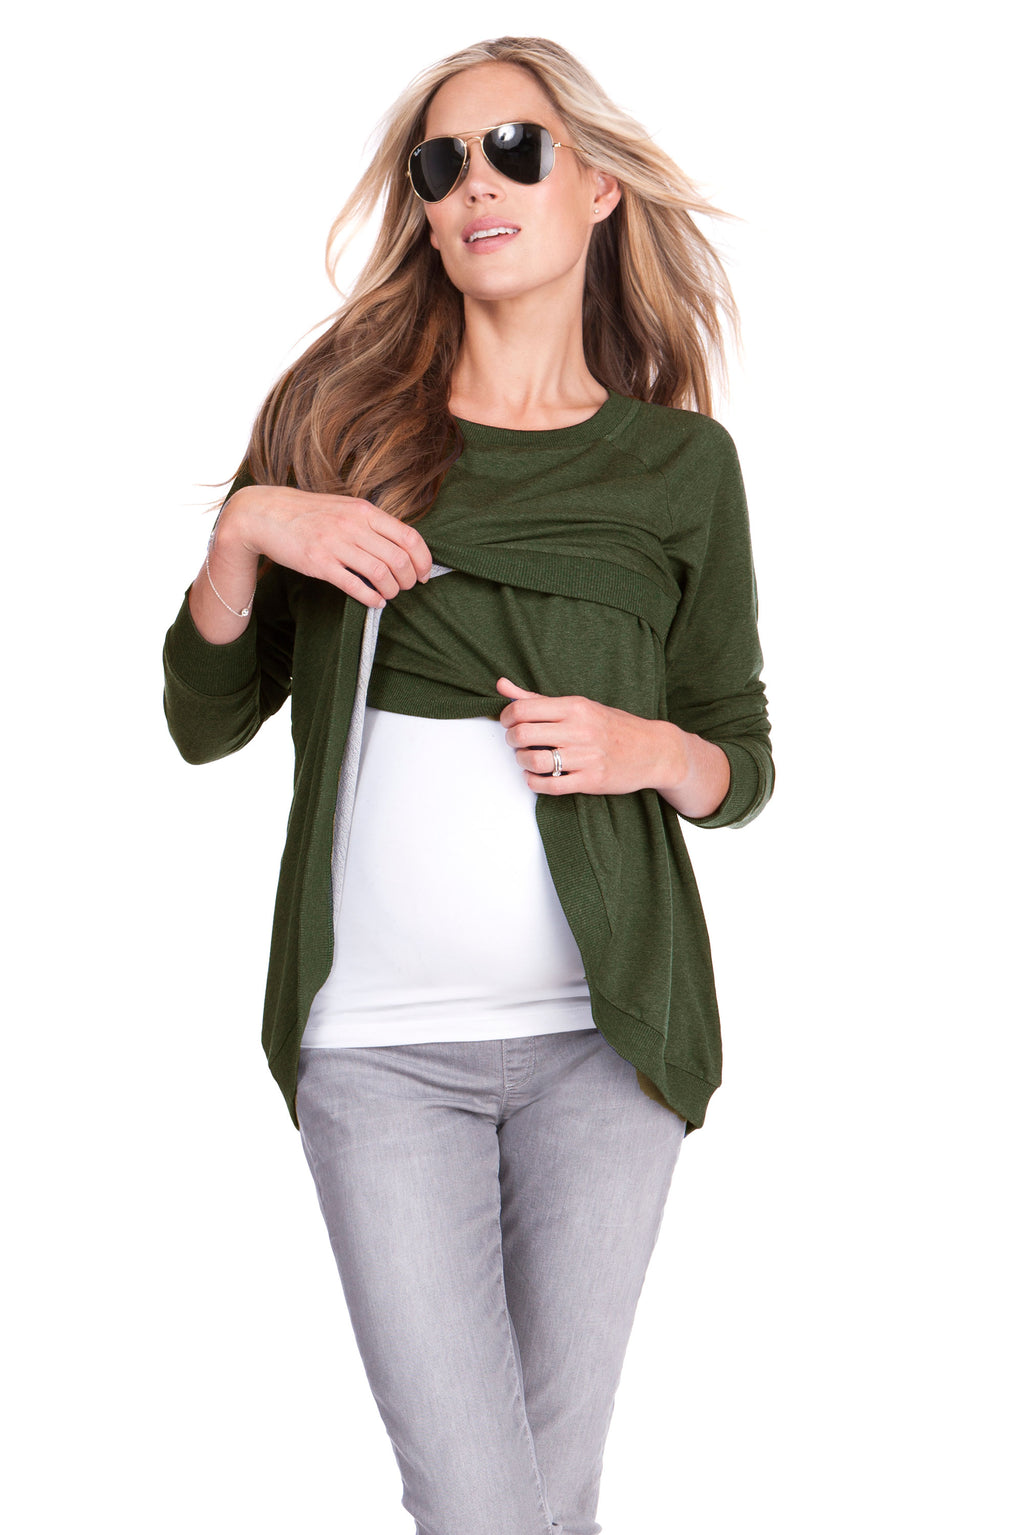 Seraphine Sybil Crossover Maternity & Nursing Sweater - Seven Women Maternity